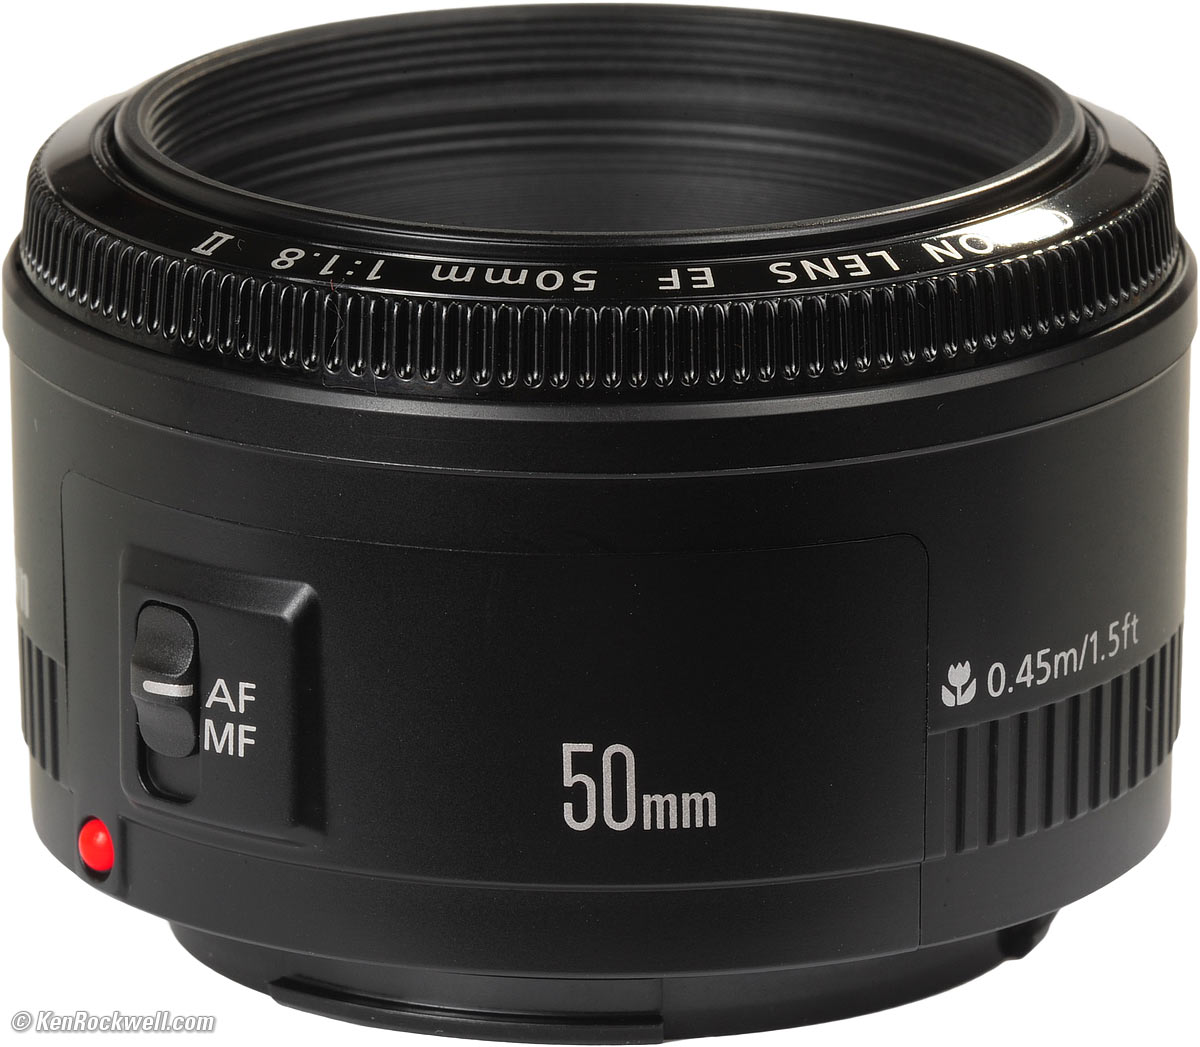 Cheery Canon Canon Ef Ii Review Fifty Lens How To Use Fifty Lens Canon dpreview Nifty Fifty Lens